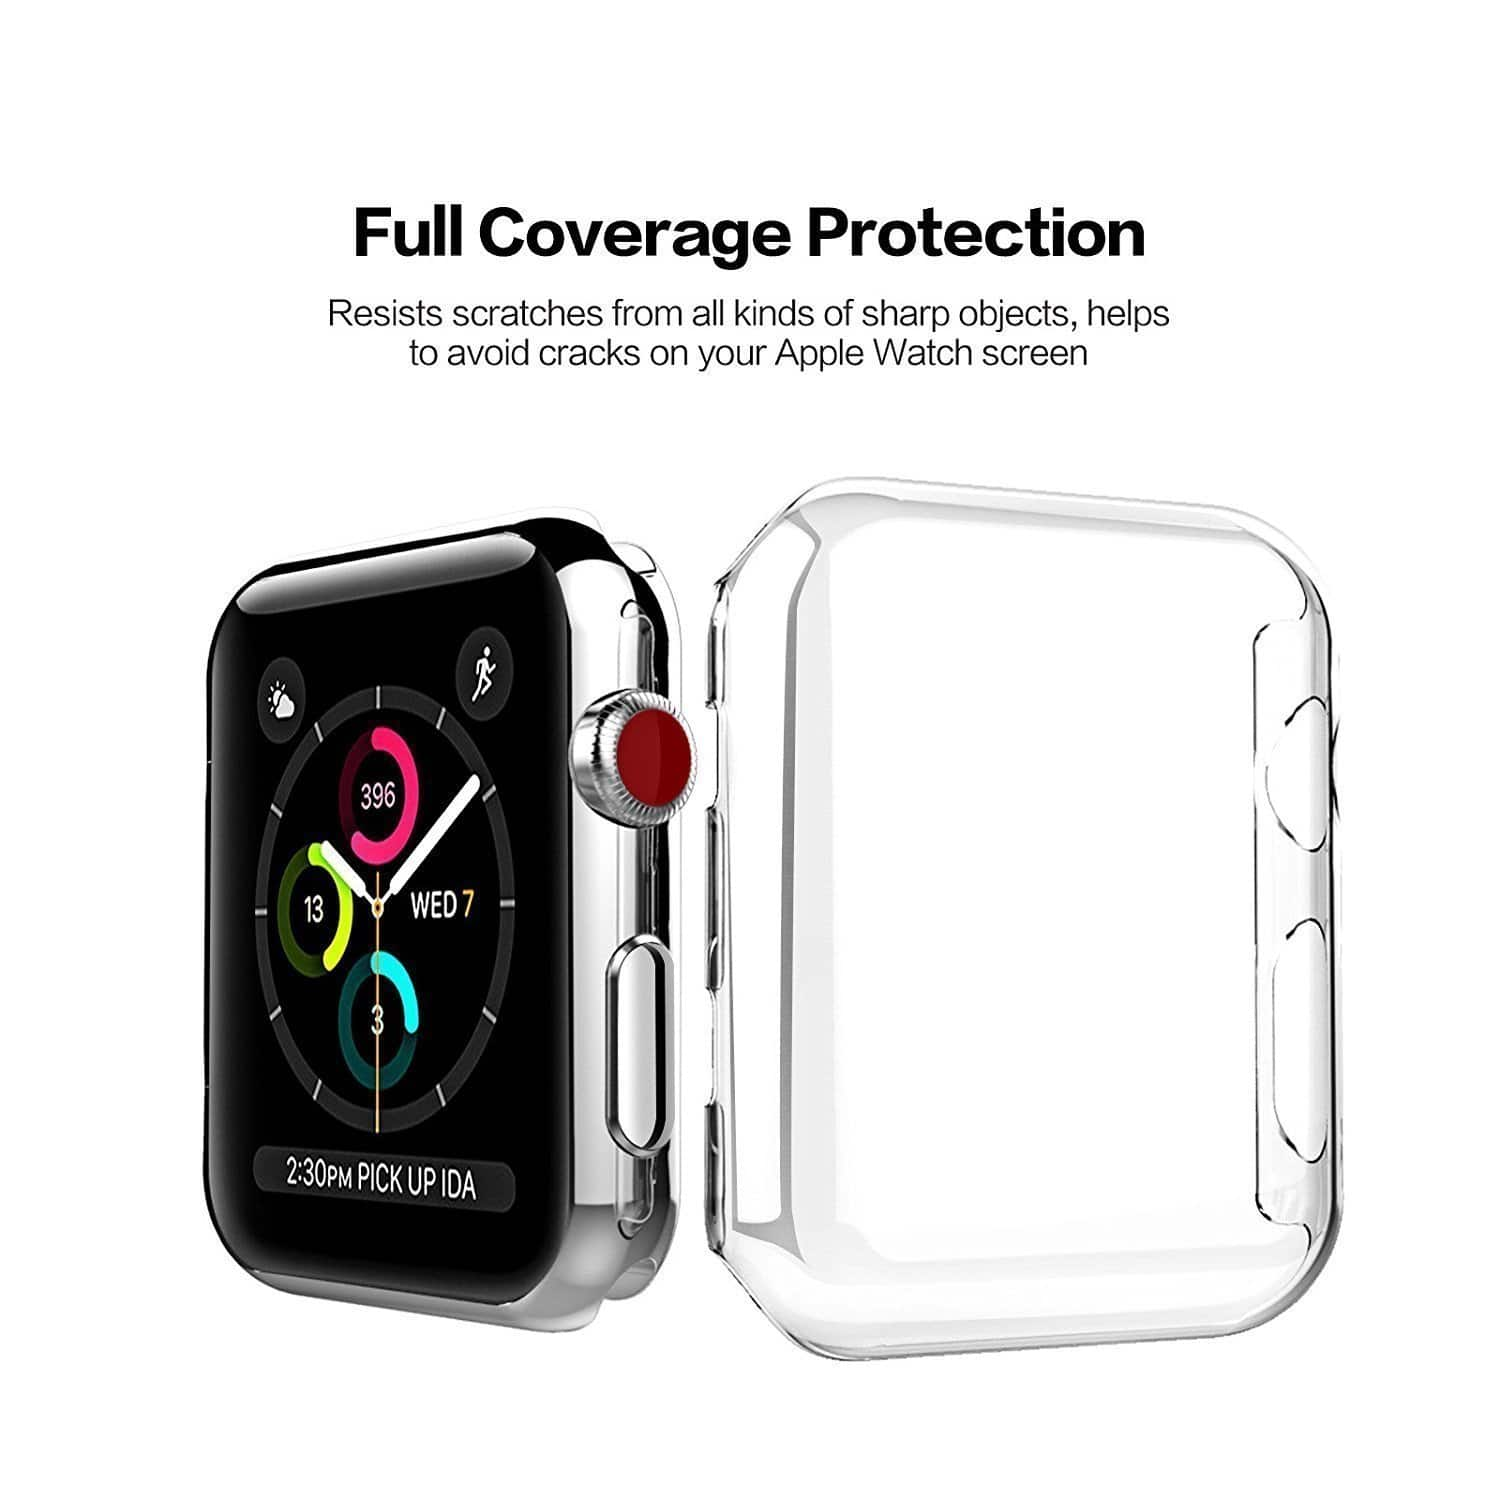 $3.15 Benuo Simple Clear PC Case for Apple Watch Series 3/2  -Free Shipping @Amazon